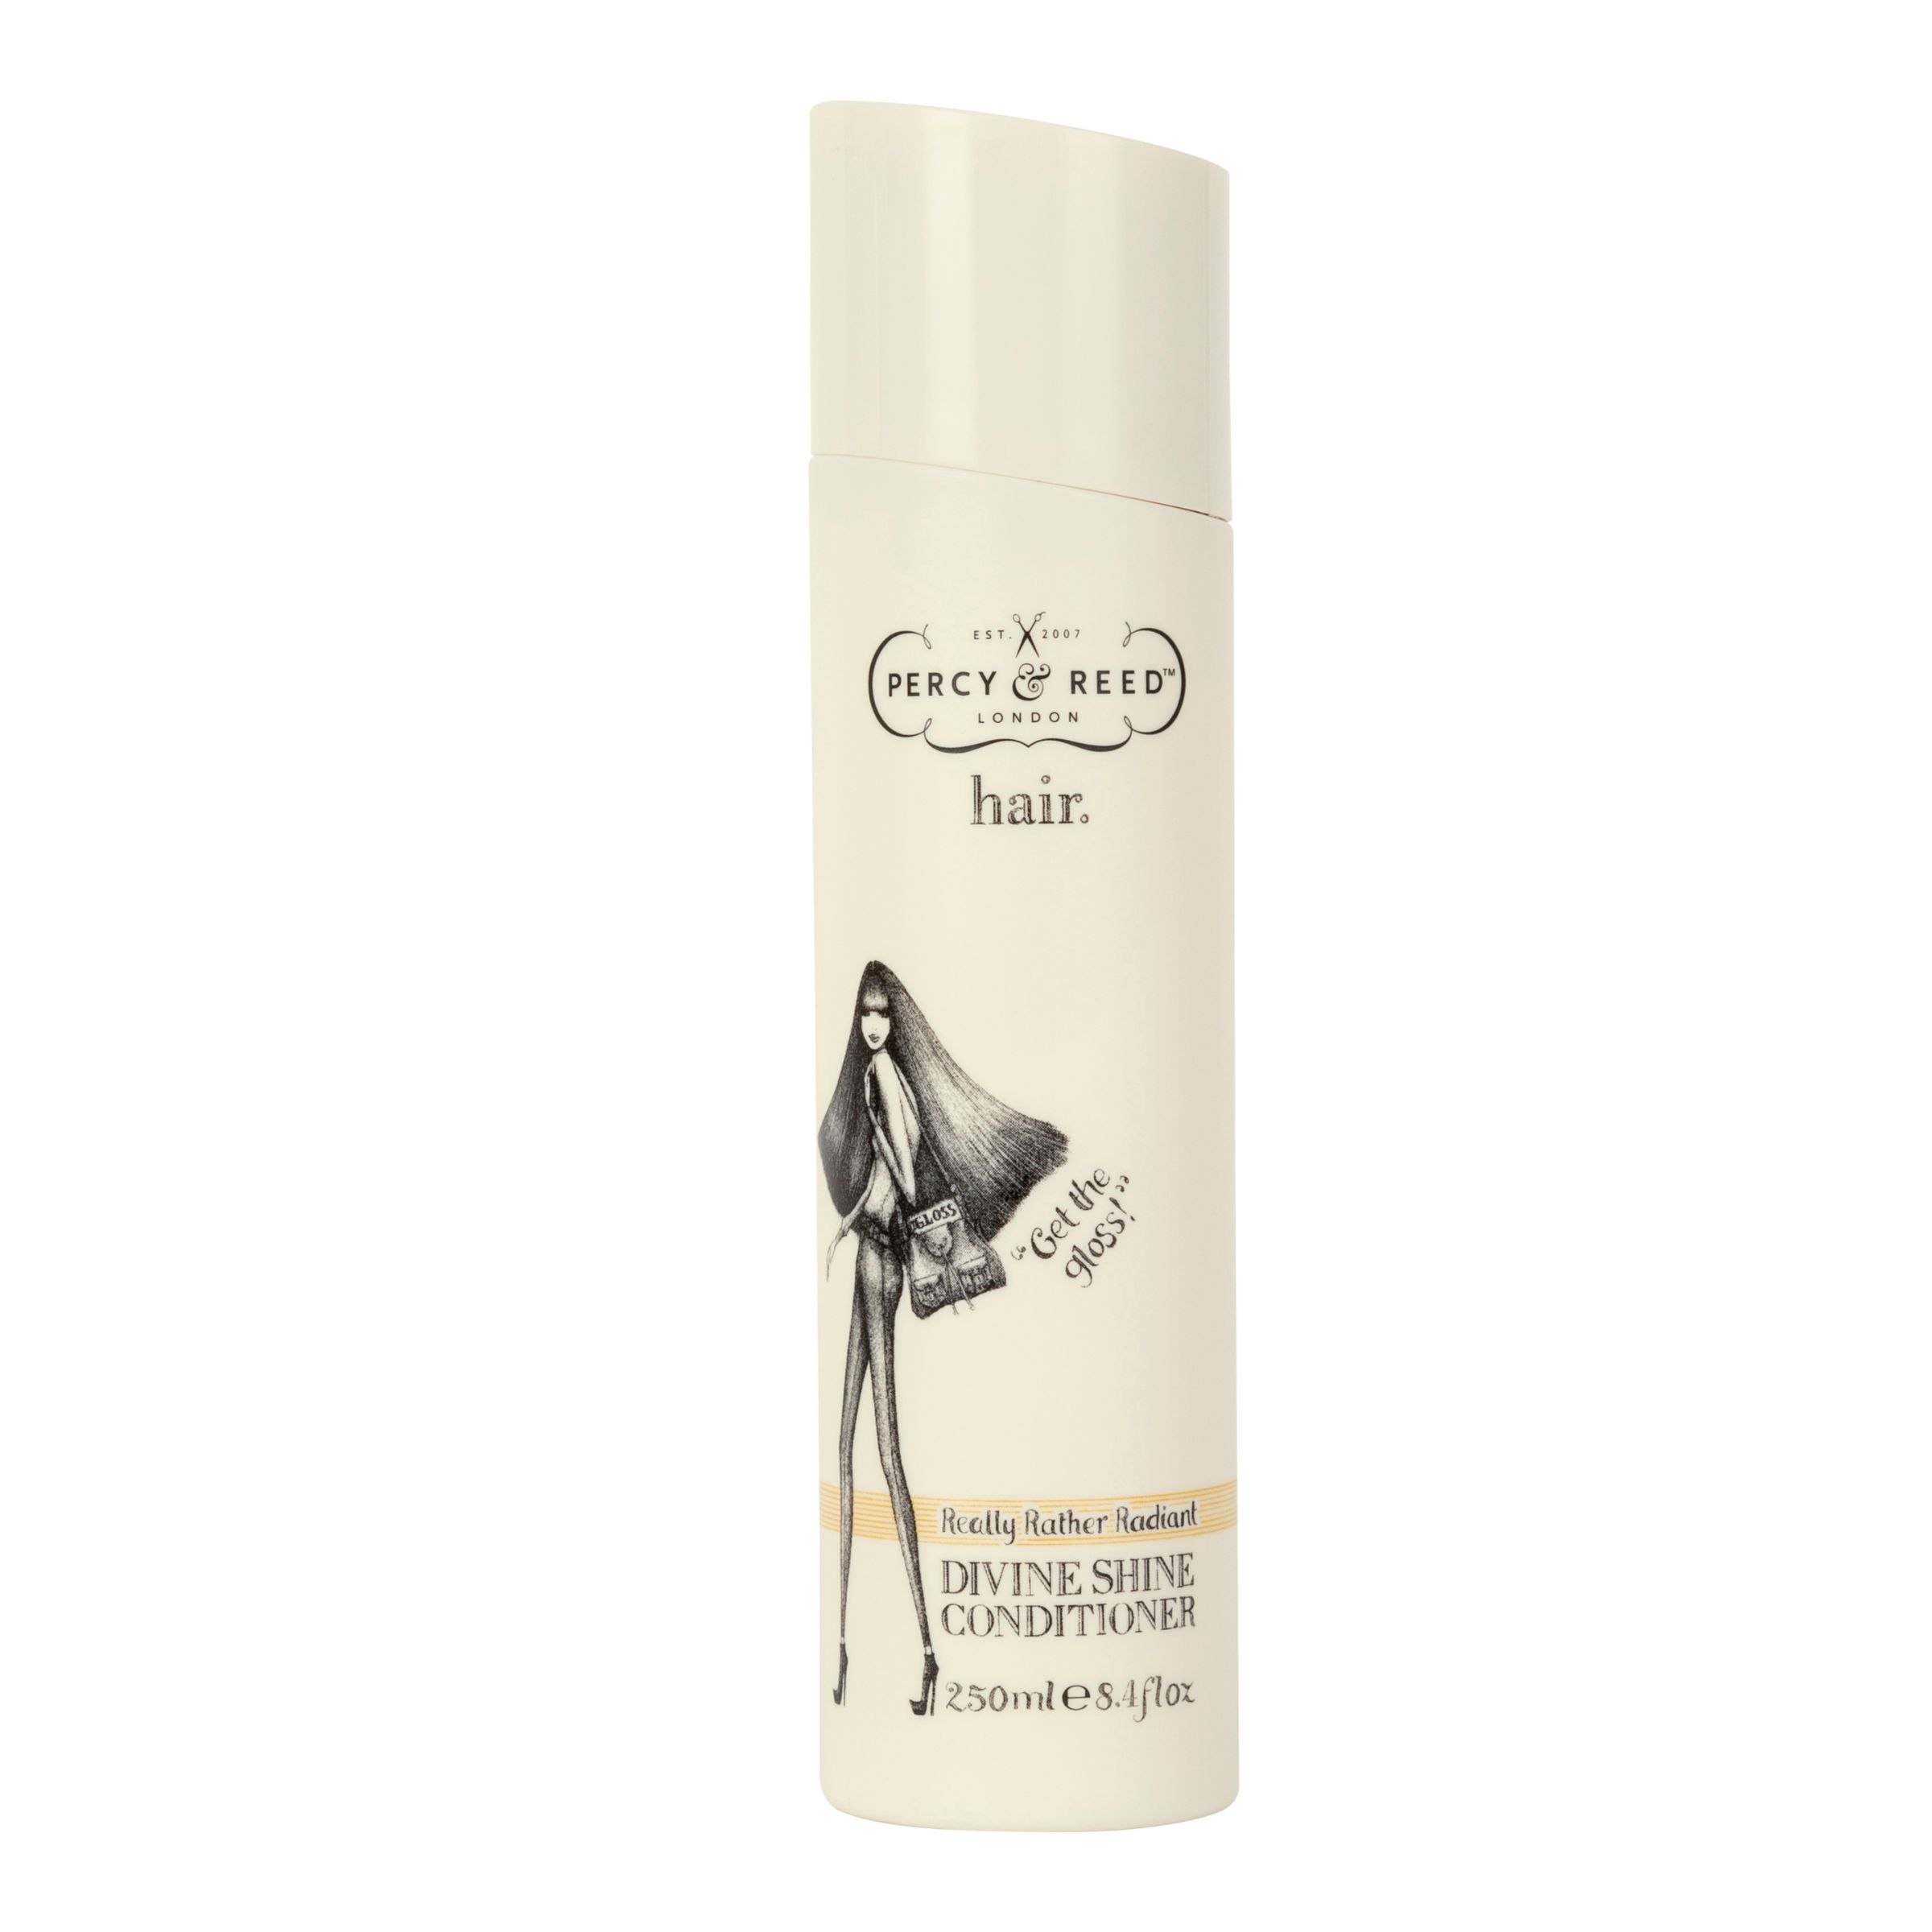 Percy & Reed Percy & Reed Really Rather Radiant Divine Shine Conditioner, 250ml